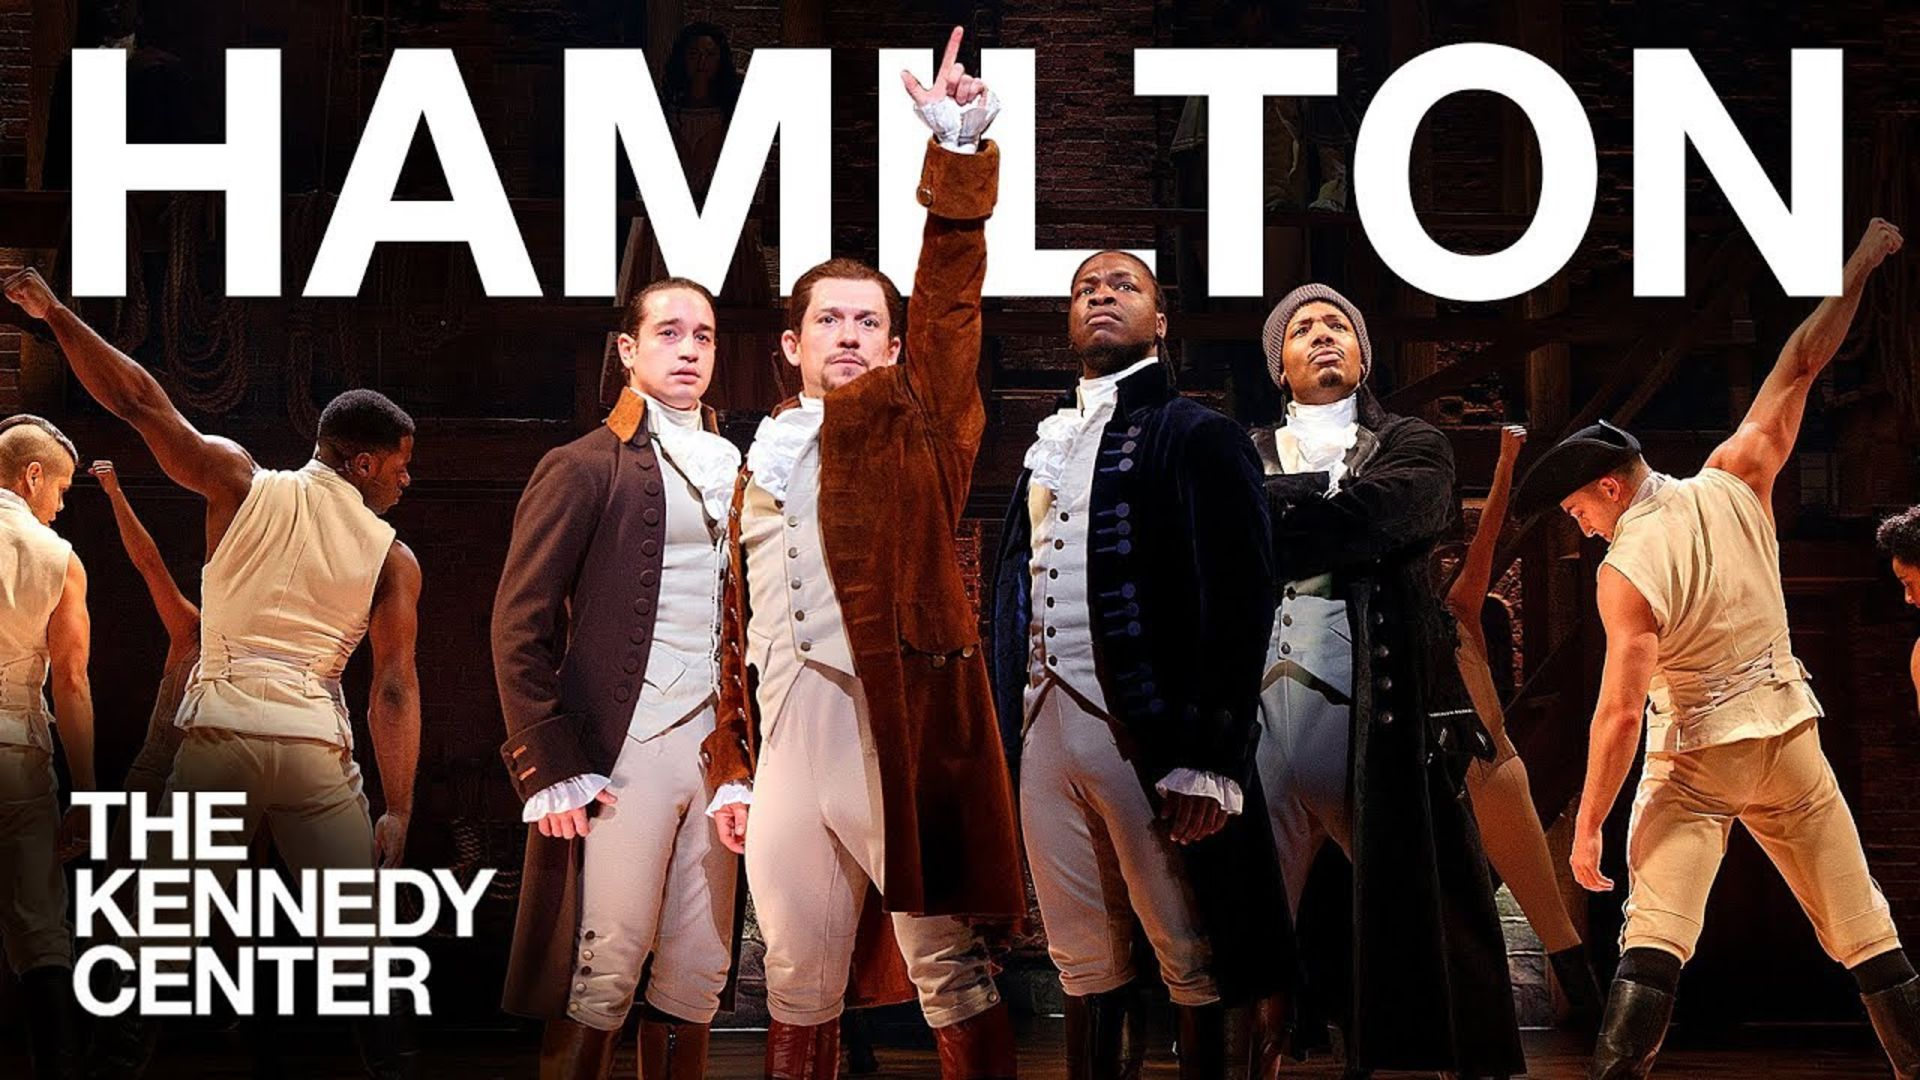 WIN A Pair of PREMIUM Tickets to See HAMILTON Live at The Kennedy Center!